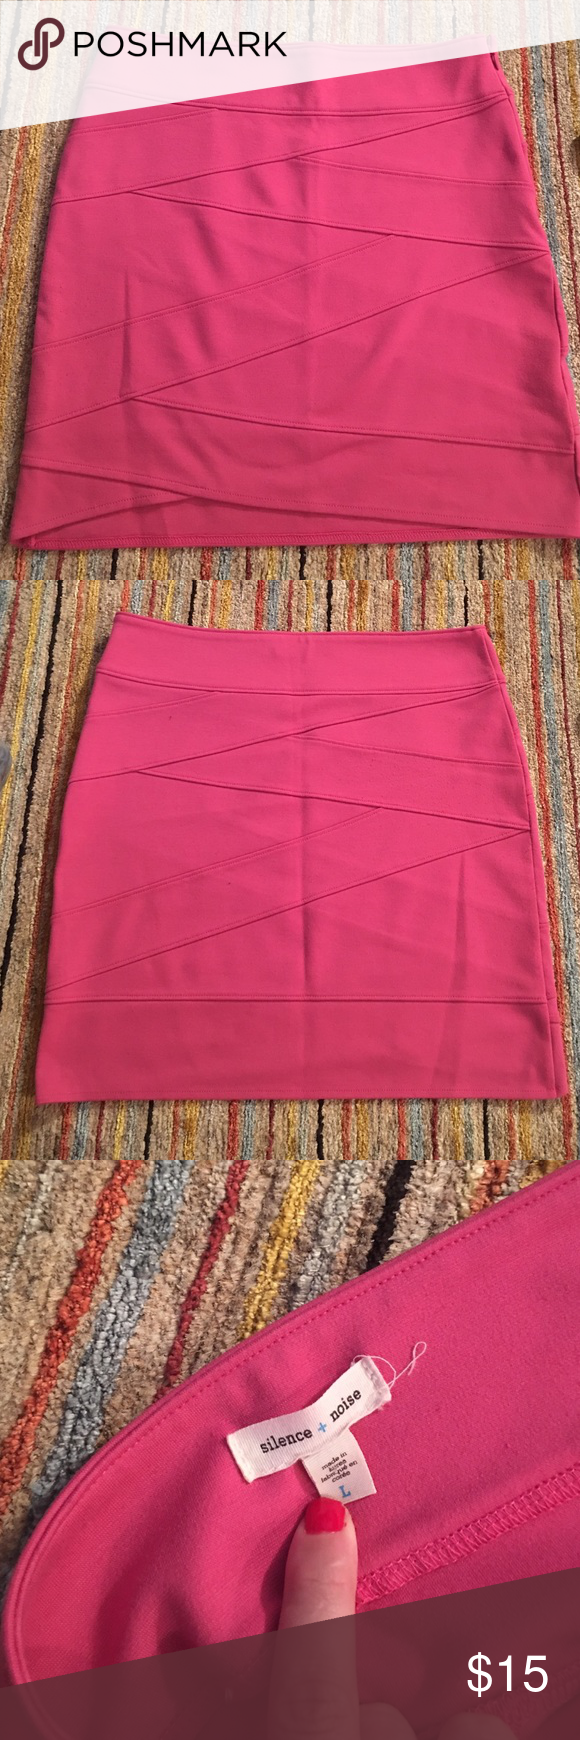 Silence and noise hot pink bandage skirt Brand is silence and noise, skirt was purchased at urban outfitters Urban Outfitters Skirts Mini